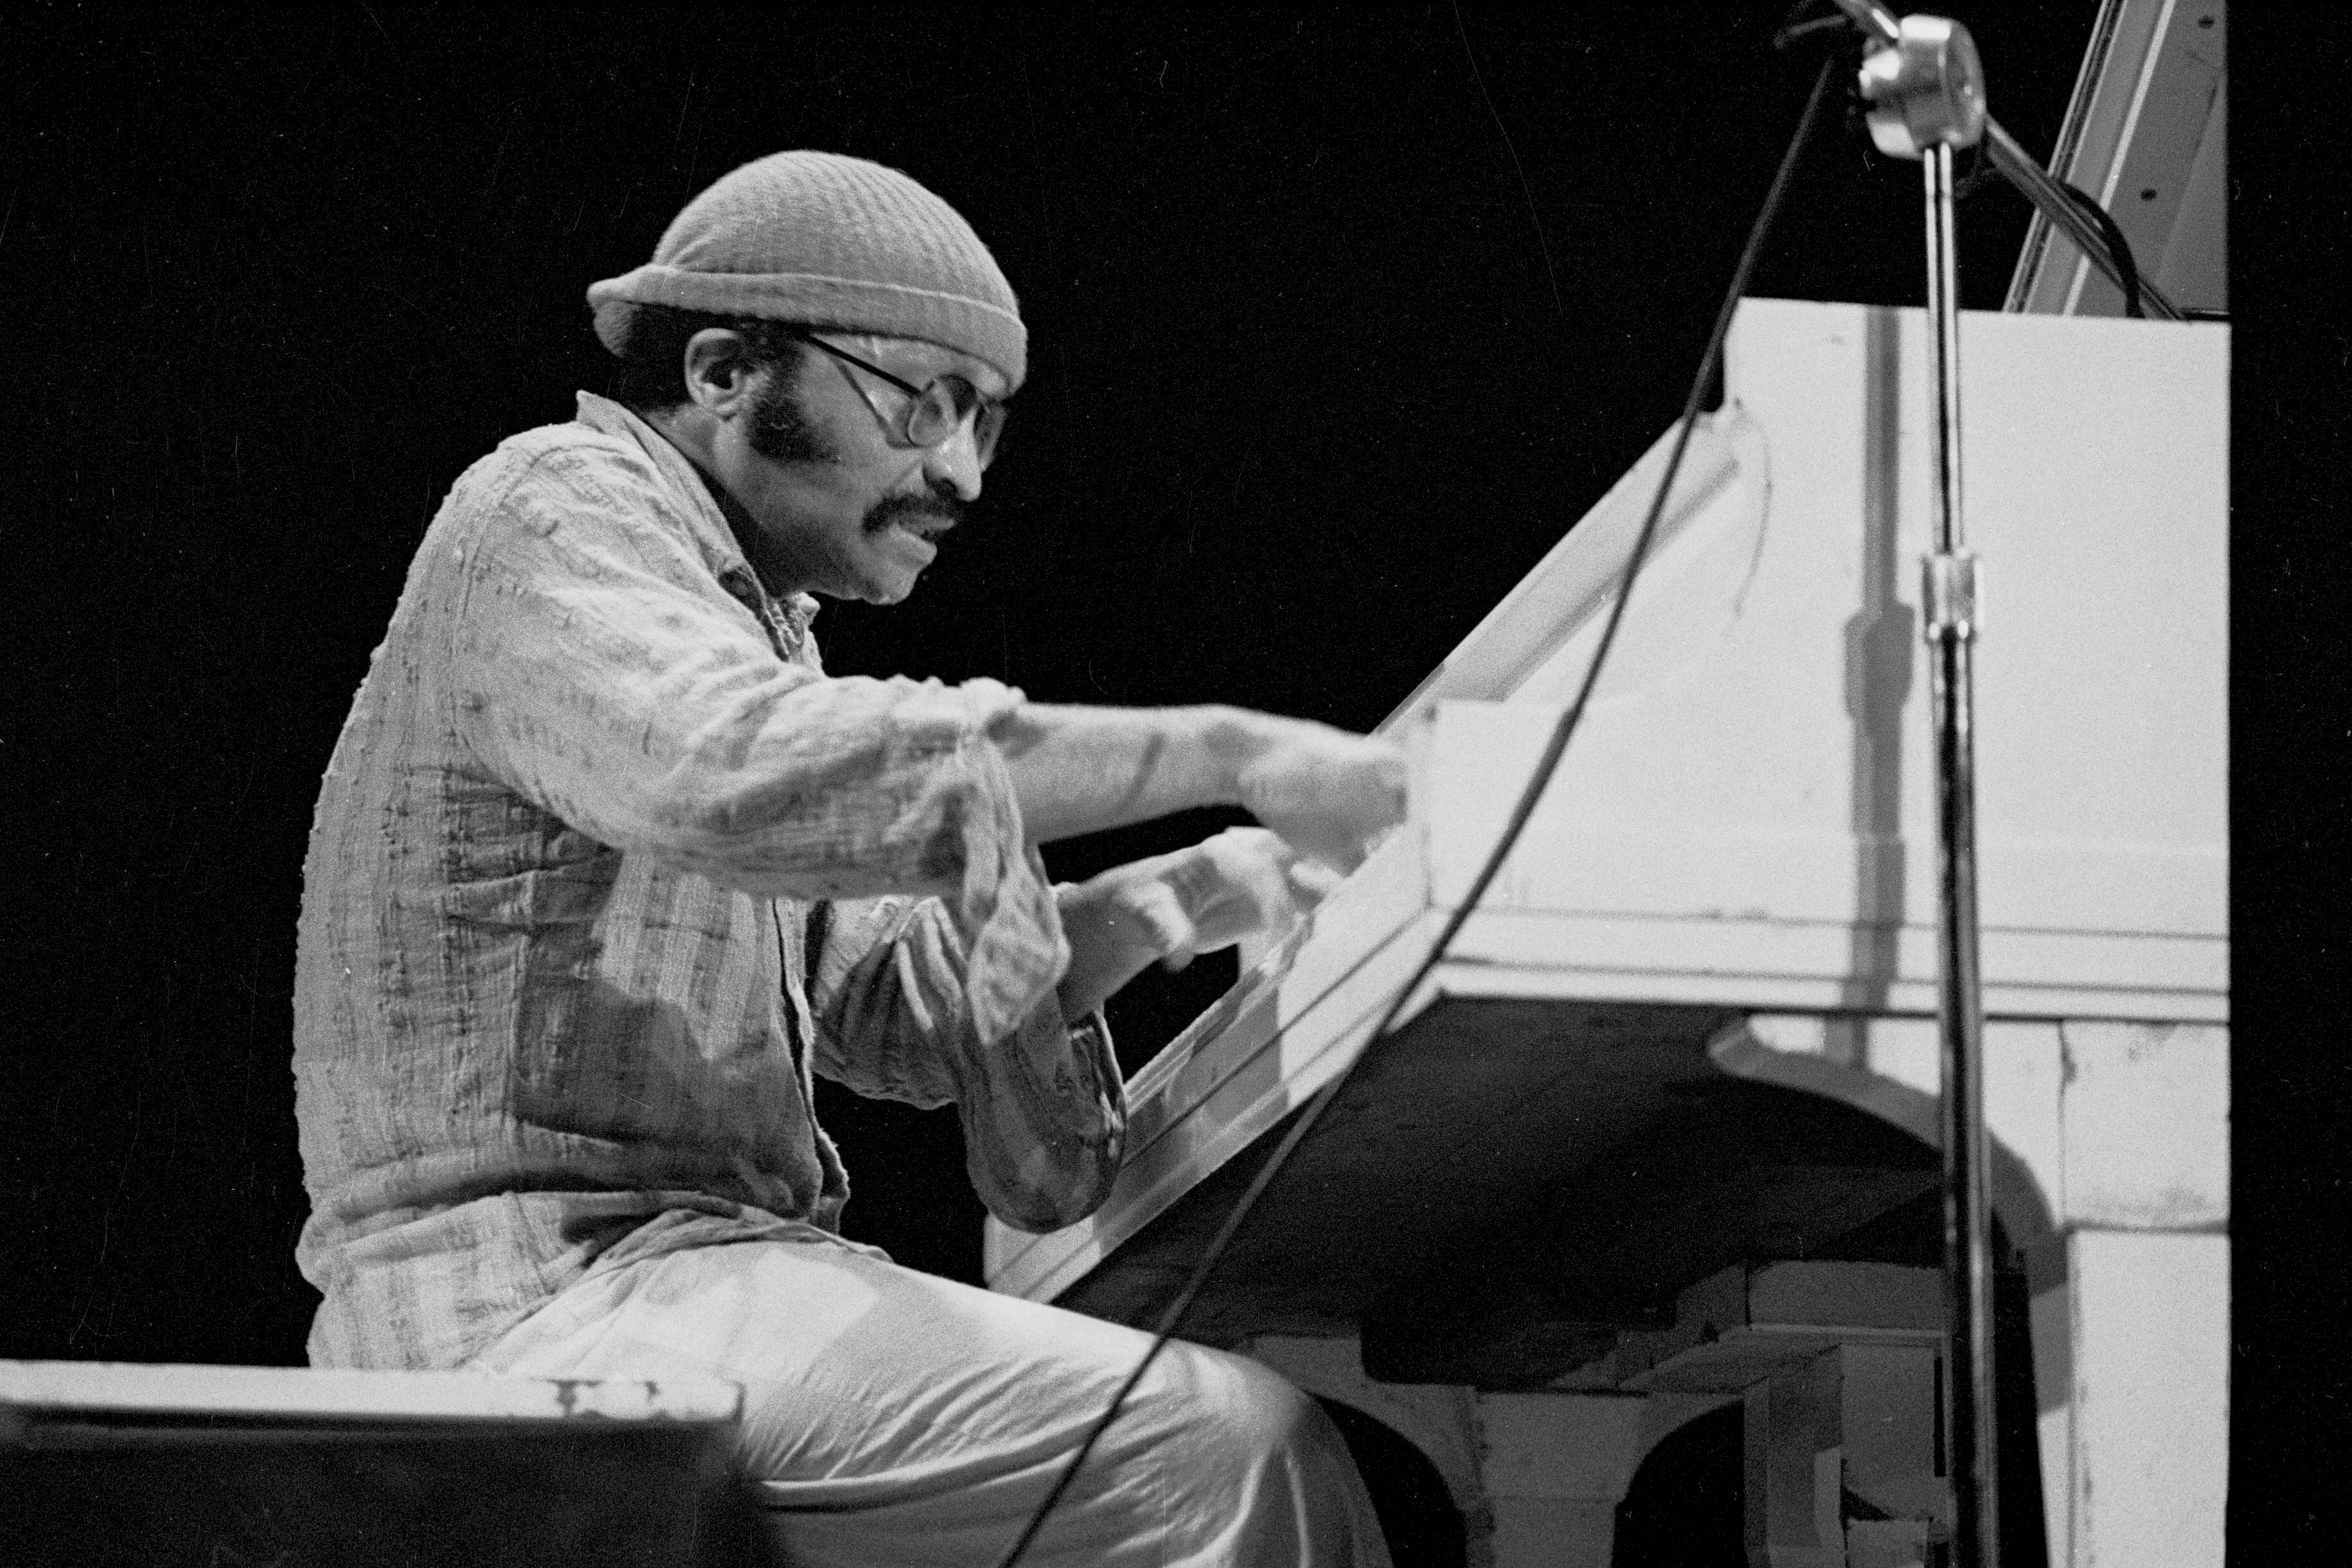 Cecil Taylor at the Power Center, April 1976 image